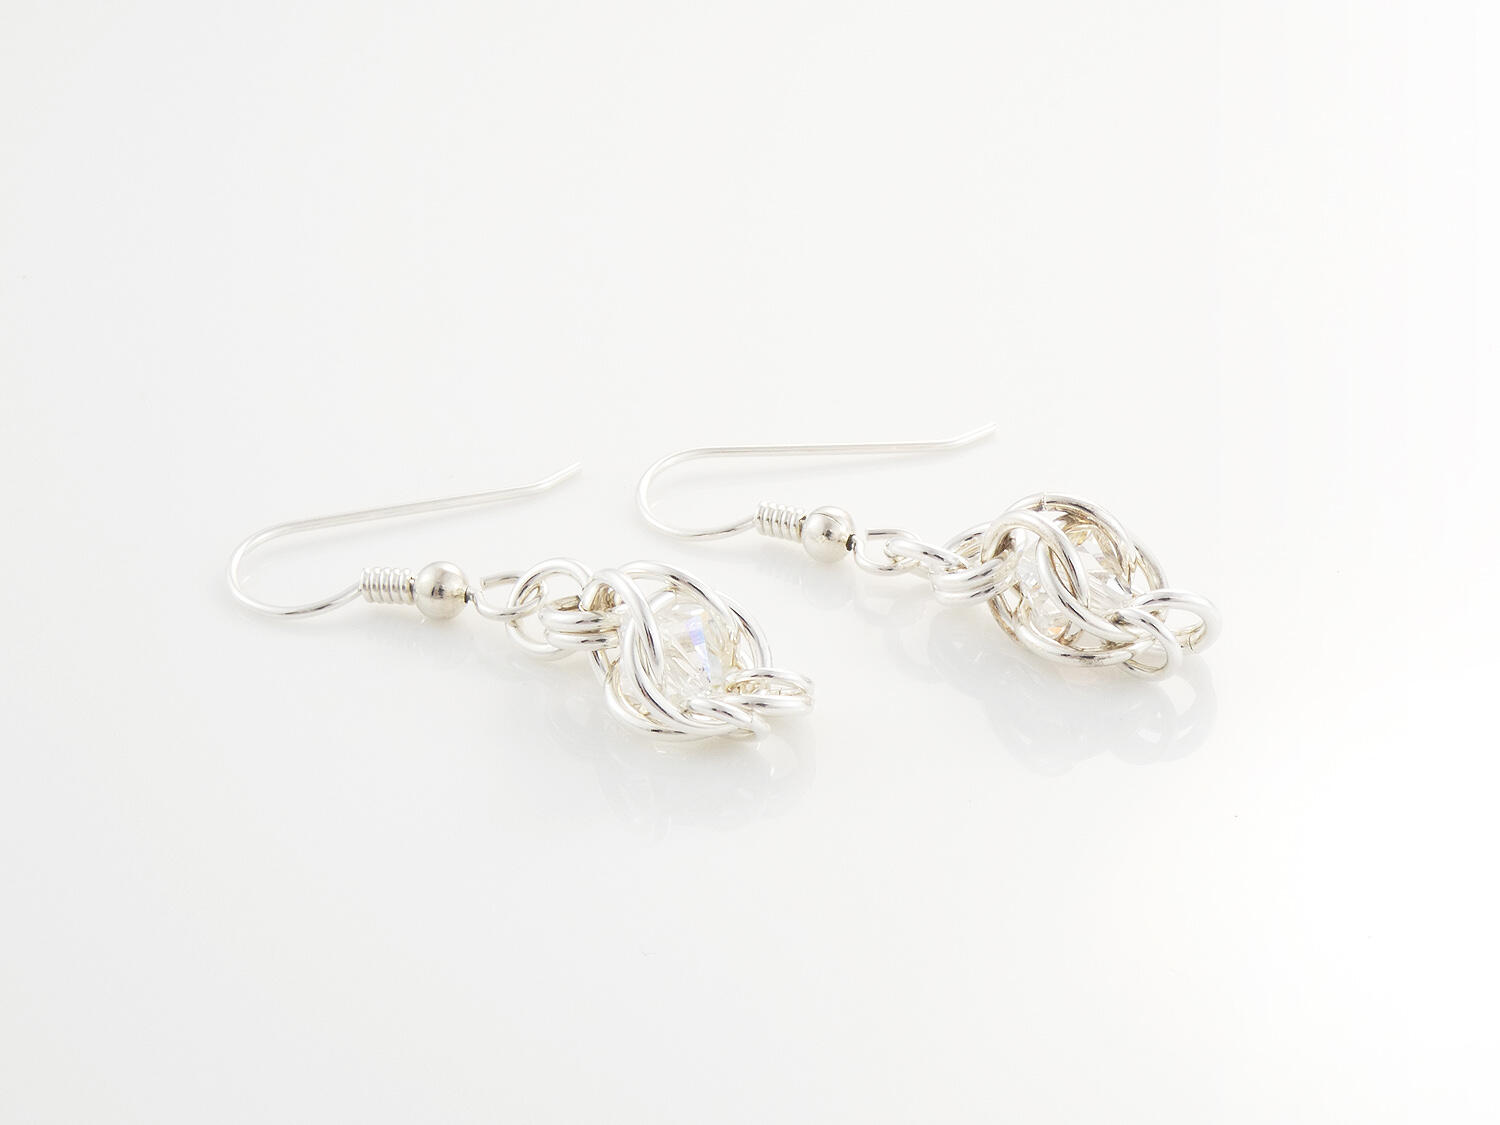 Silver Chainmaille Captured Bead Earrings Crystal AB